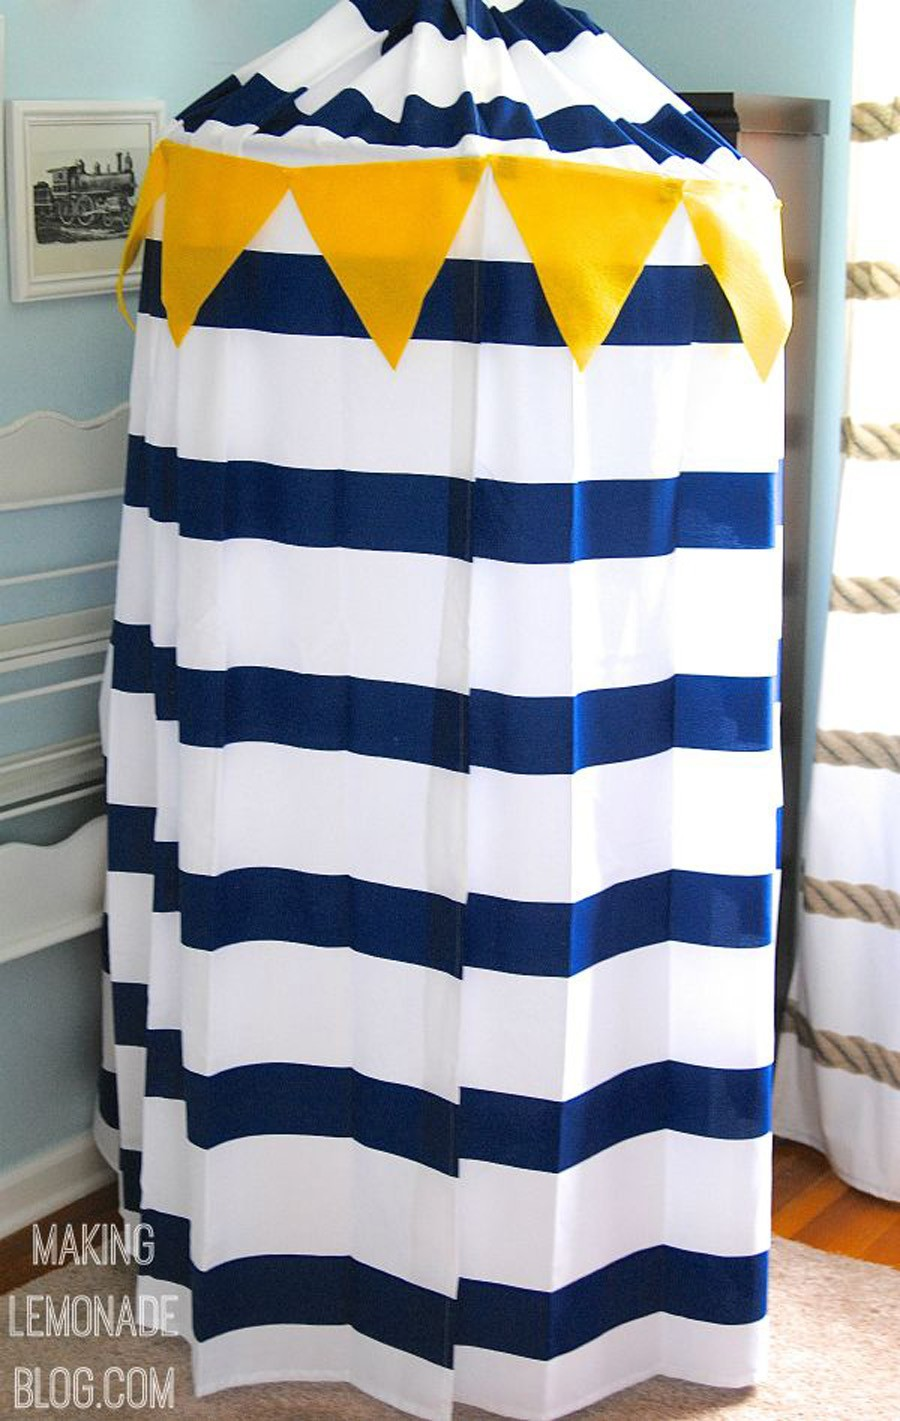 How to make a no-sew canopy tent